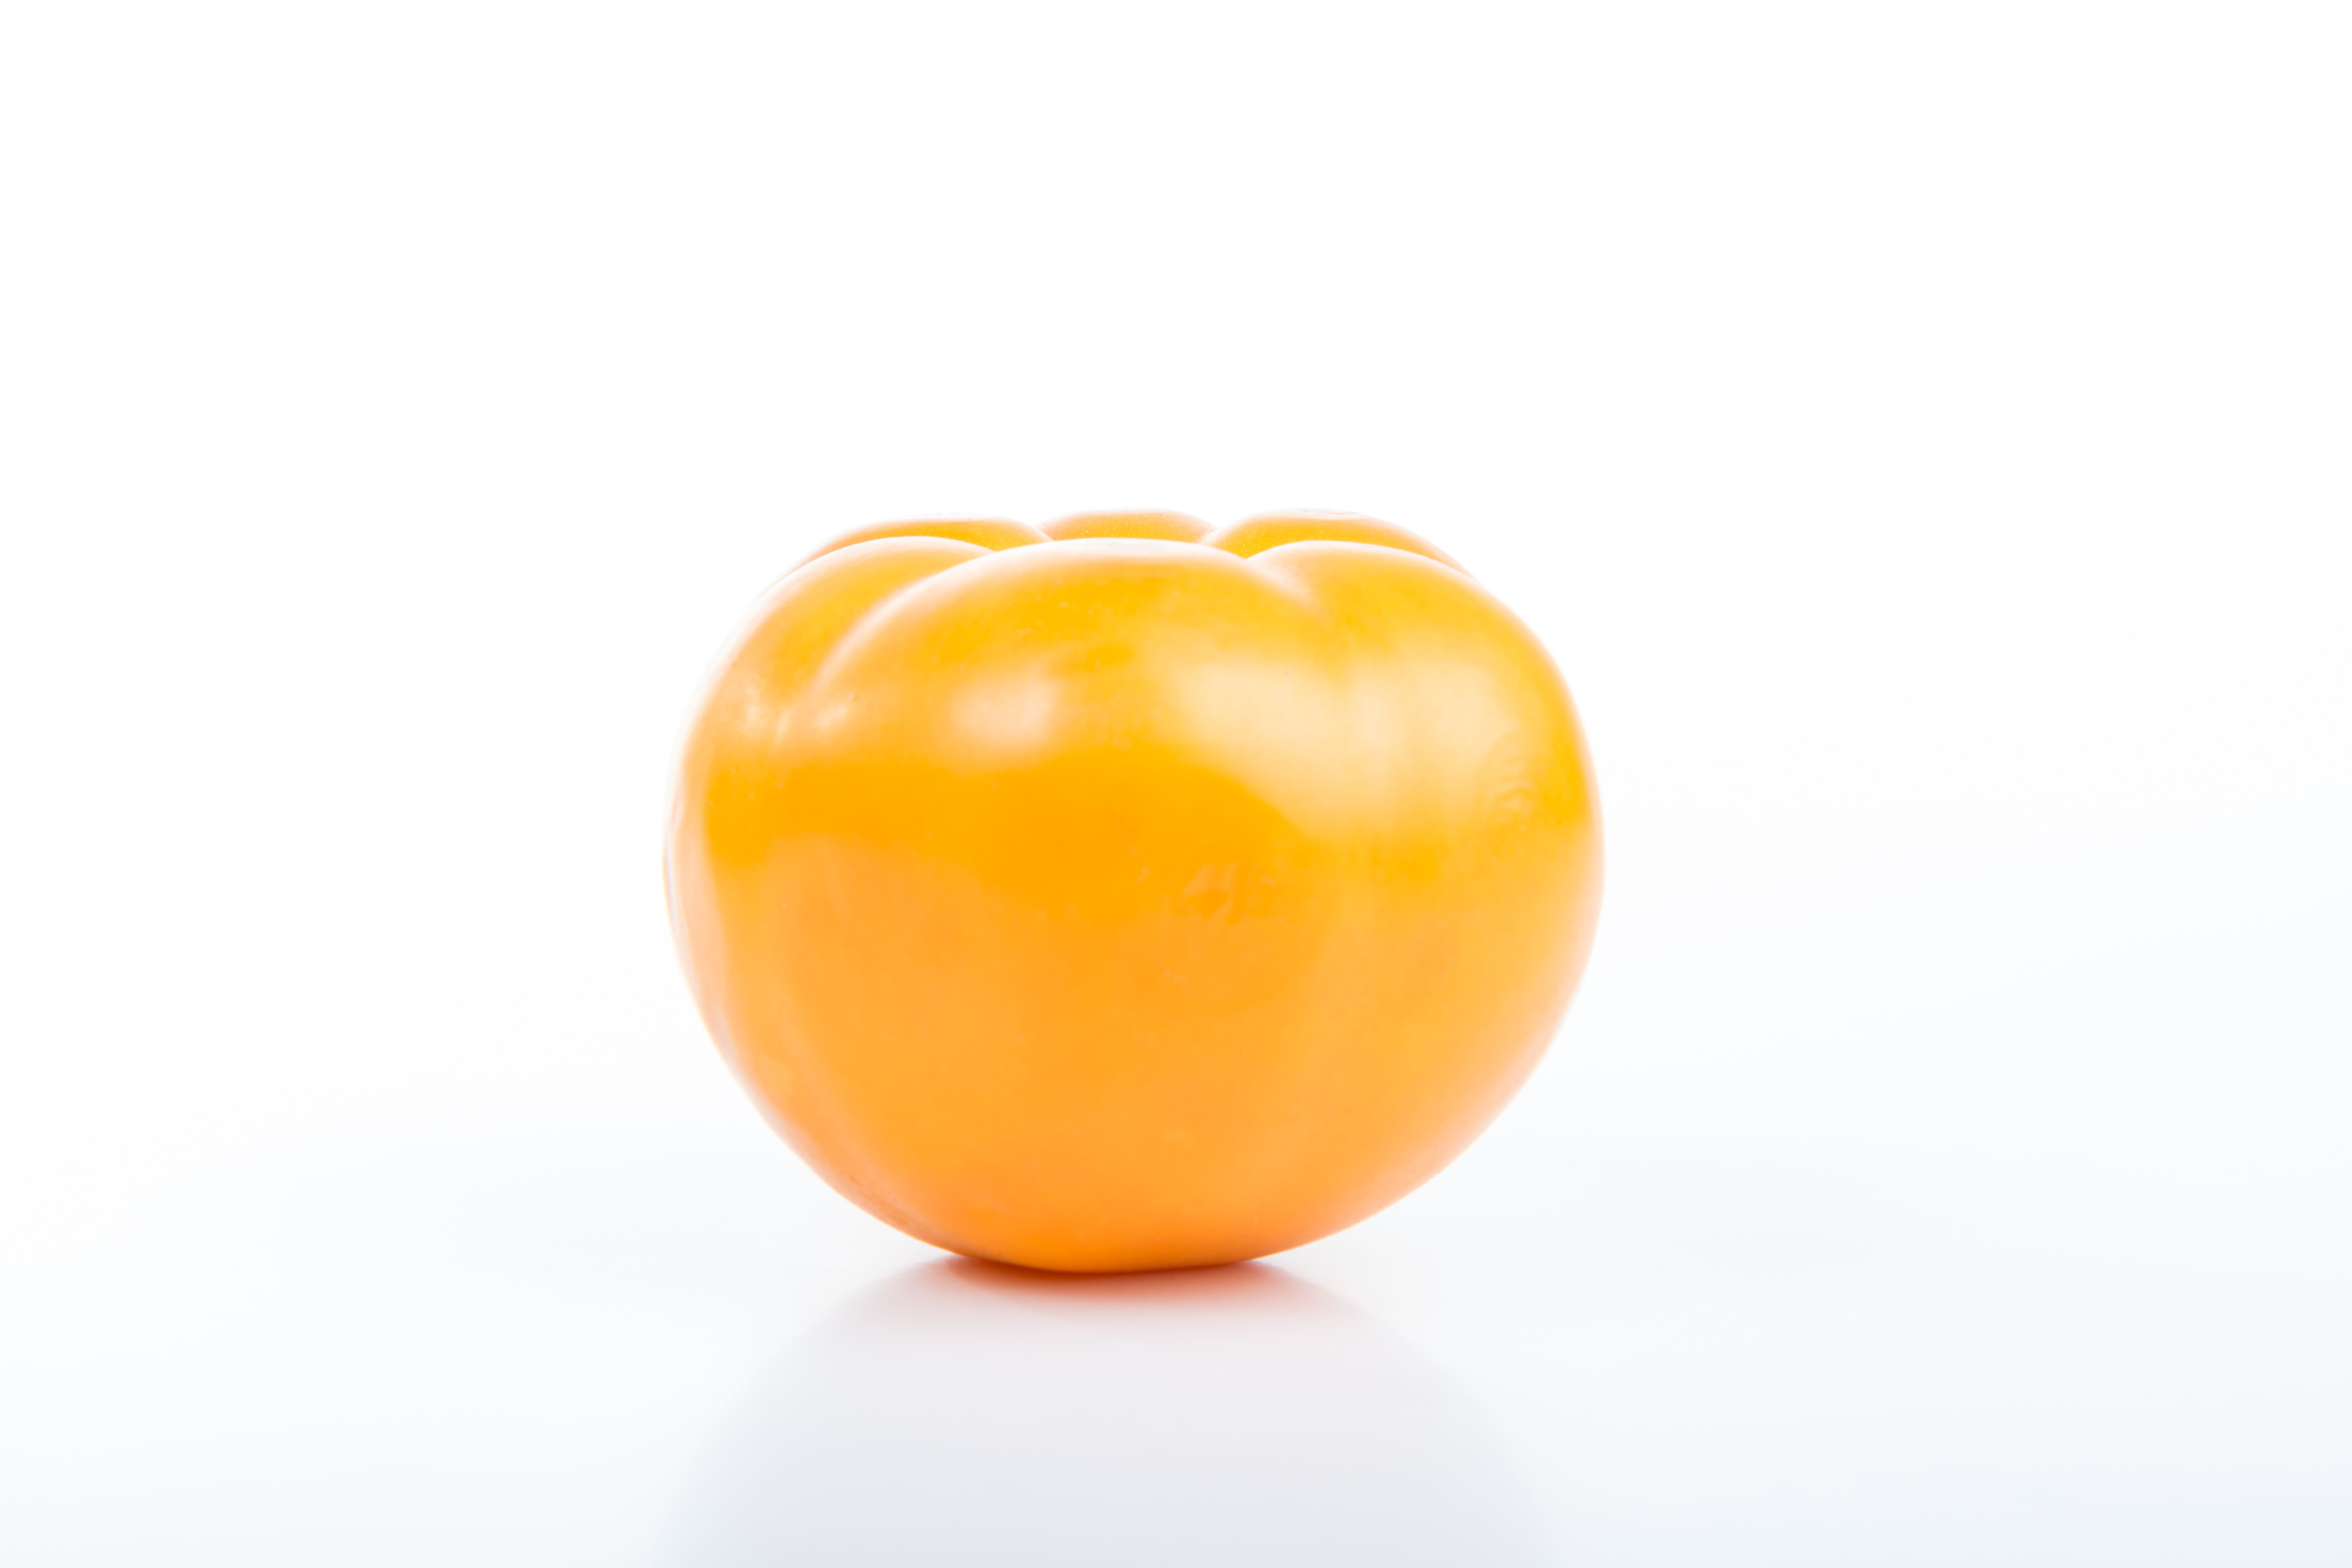 tomato on top of white surface